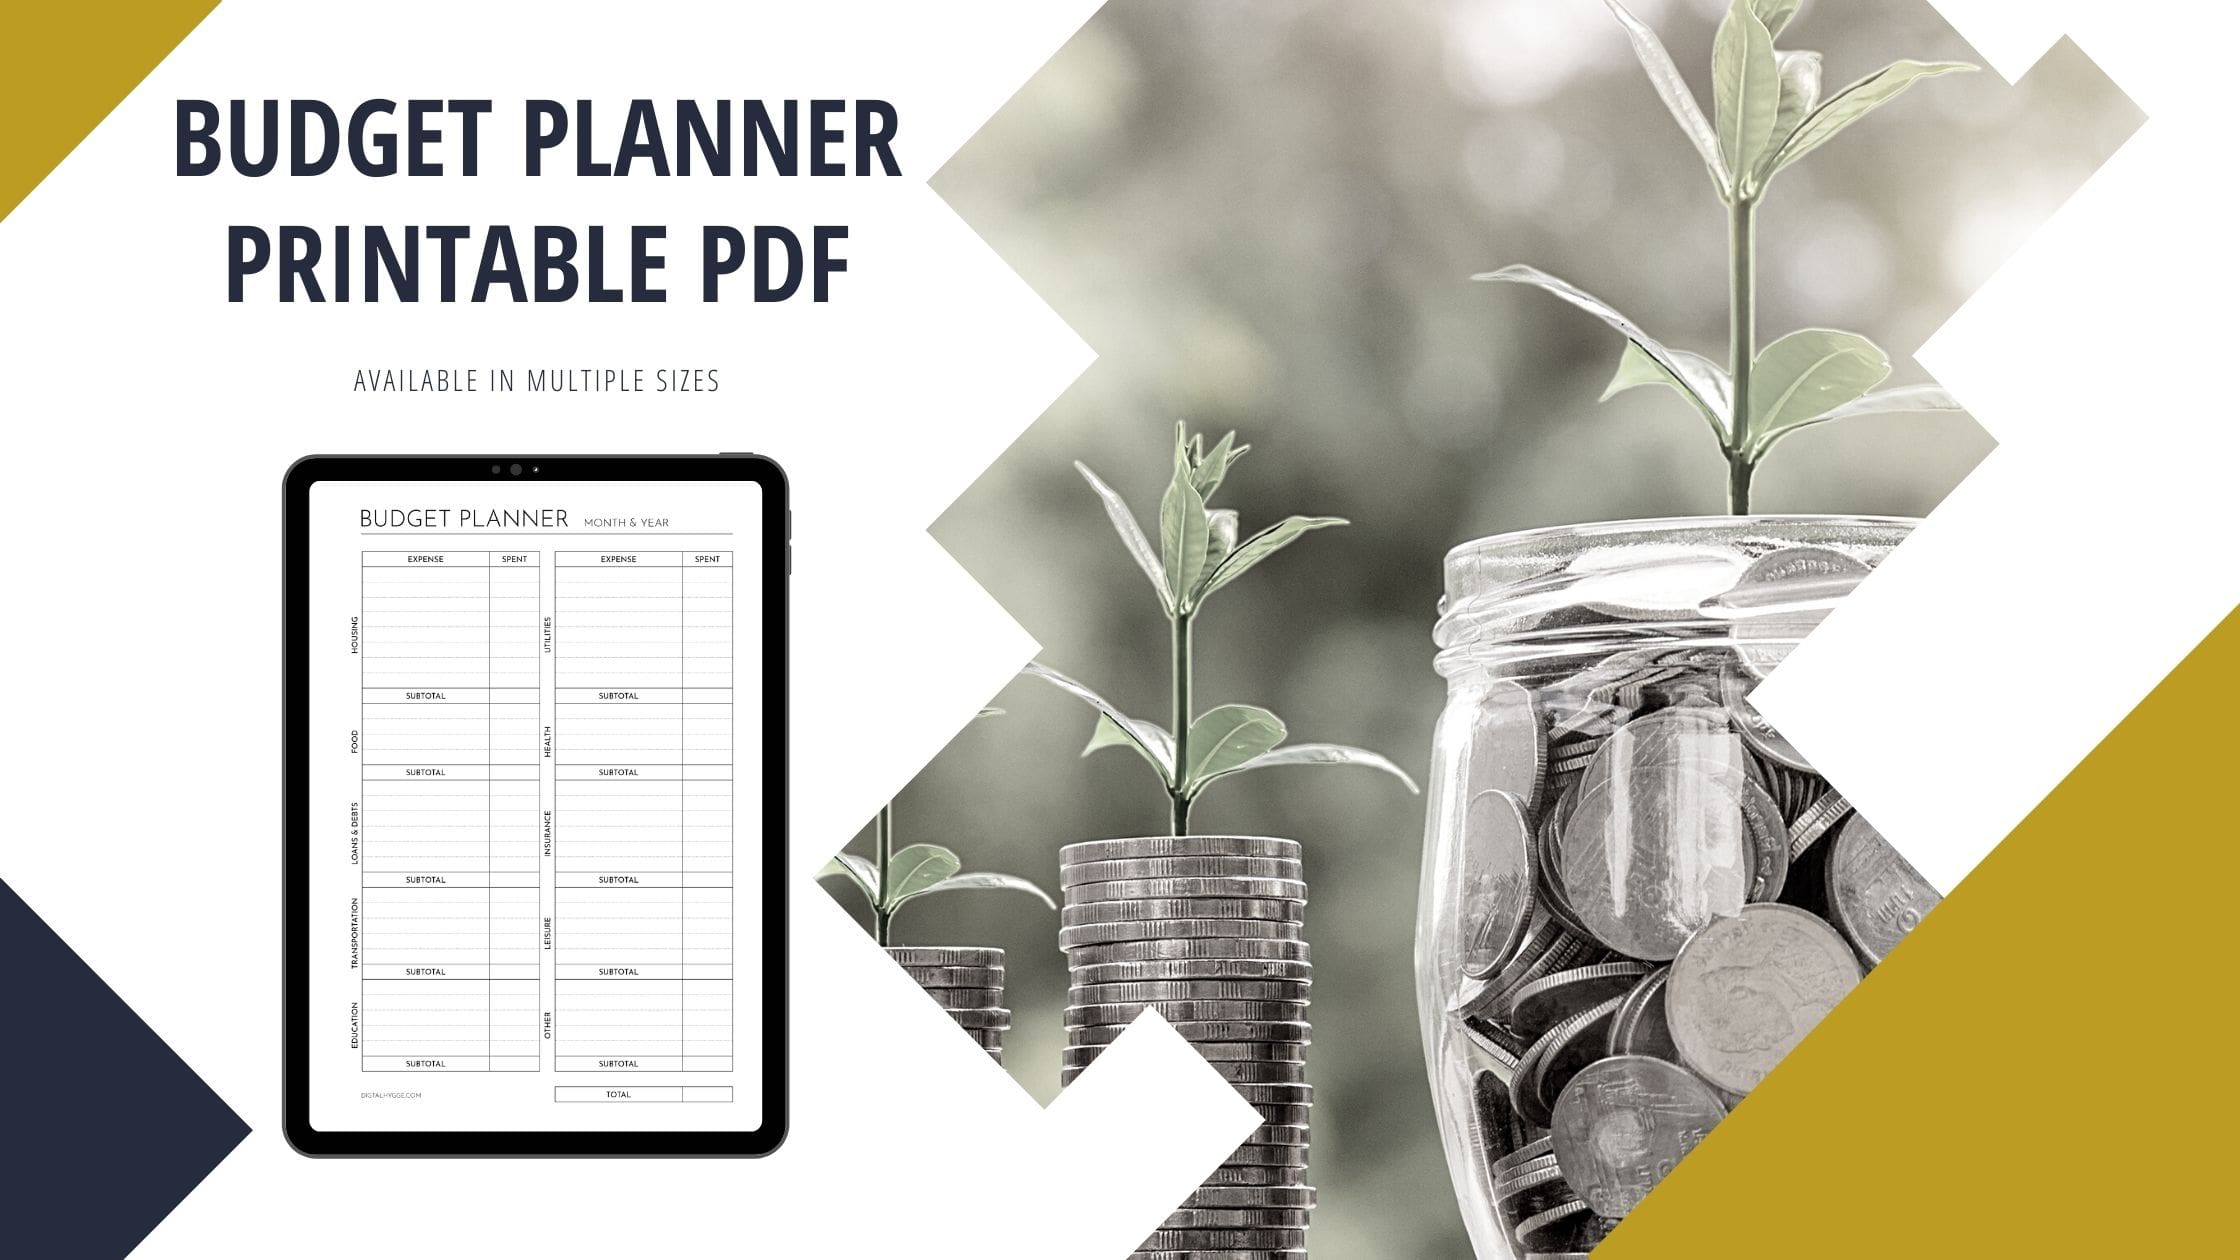 Monthly Budget Planner (Printable PDF)